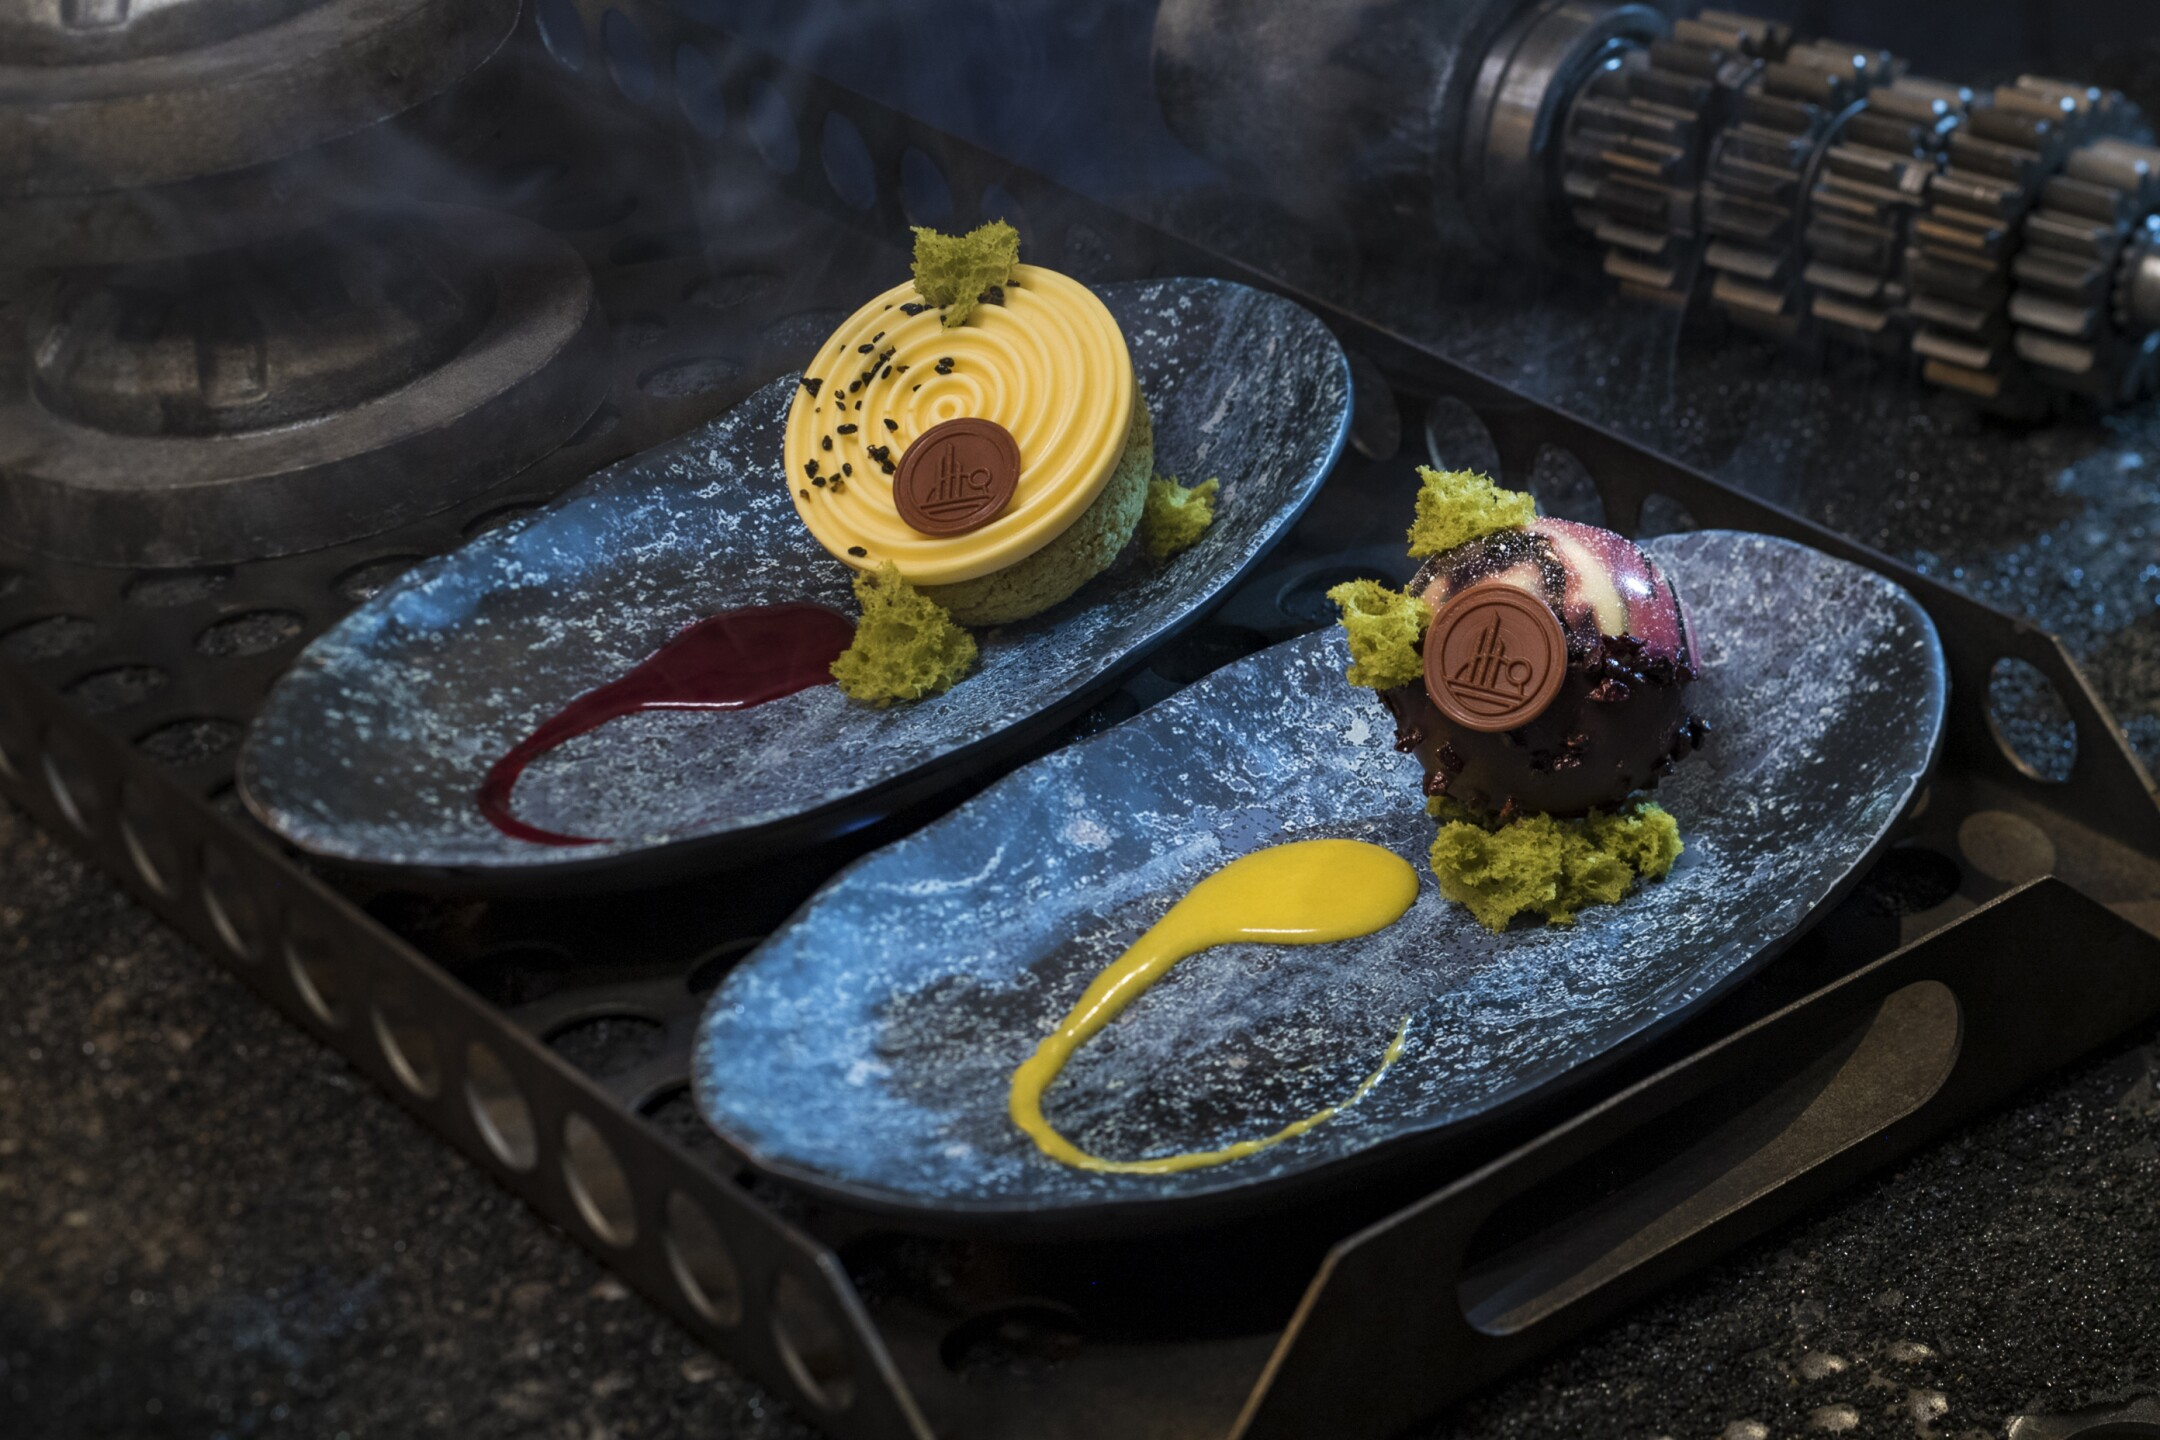 Star Wars: Galaxy's Edge - Docking Bay 7 Food and Cargo Desserts